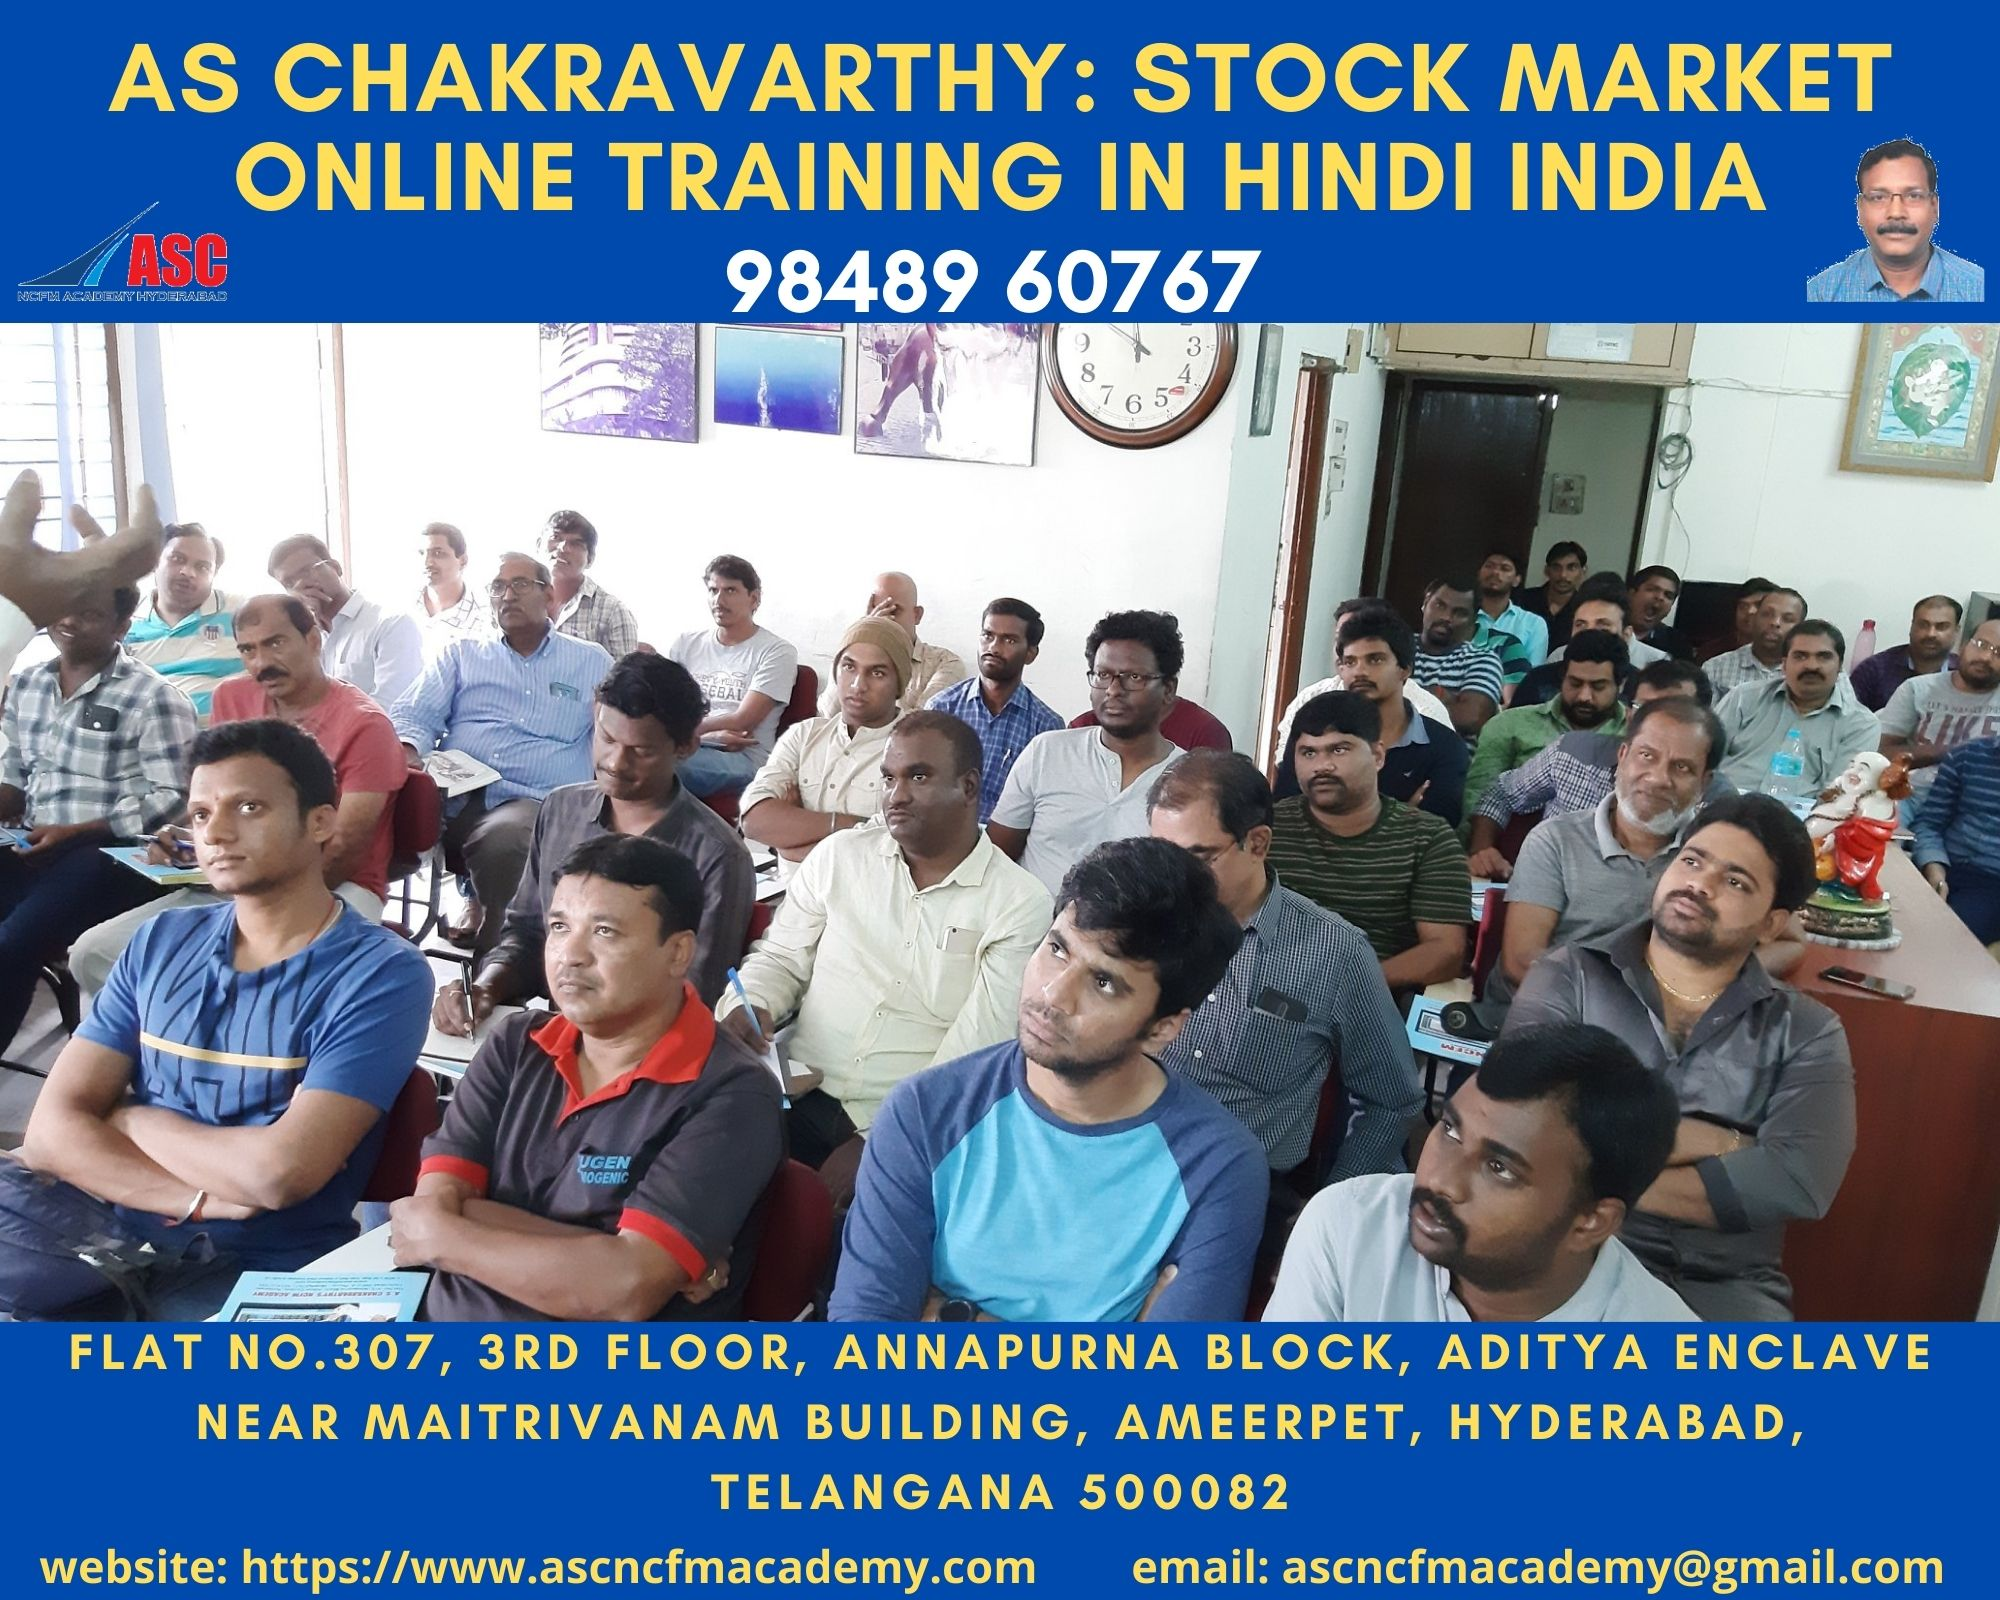 Online Stock Market Trading and Technical Analysis Course Training in India